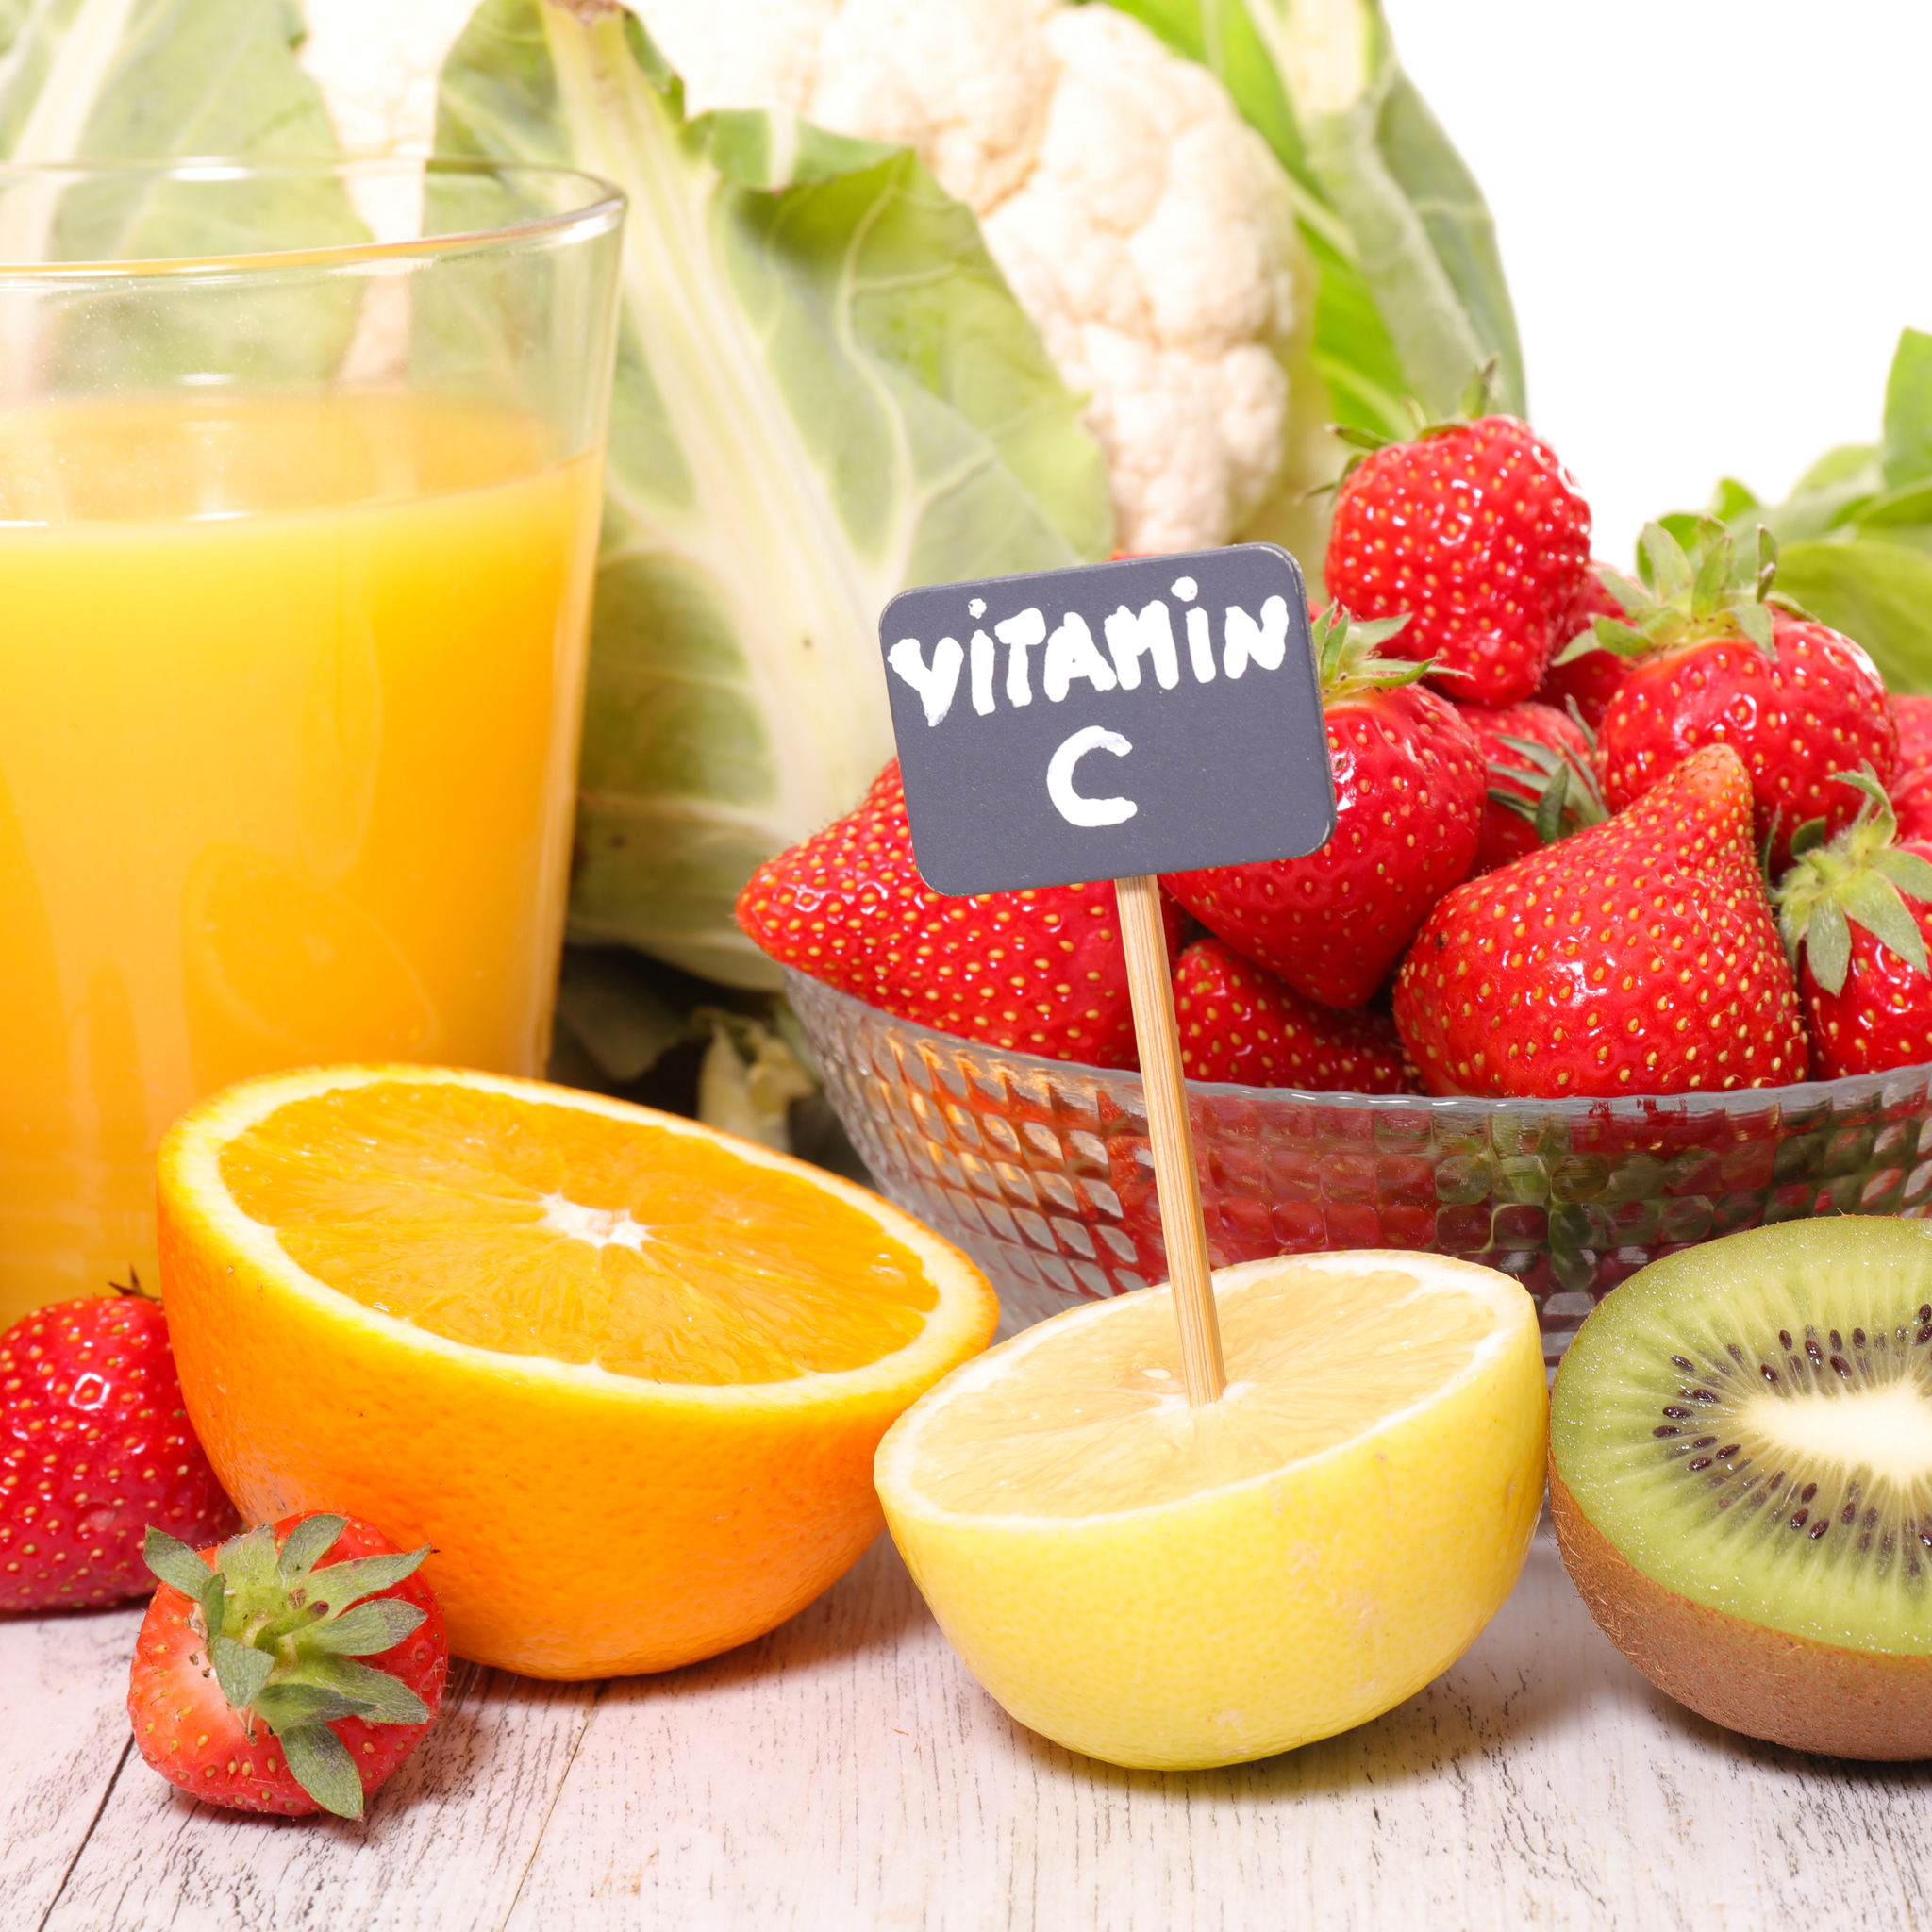 59383467 - vitamin c, assorted fruit